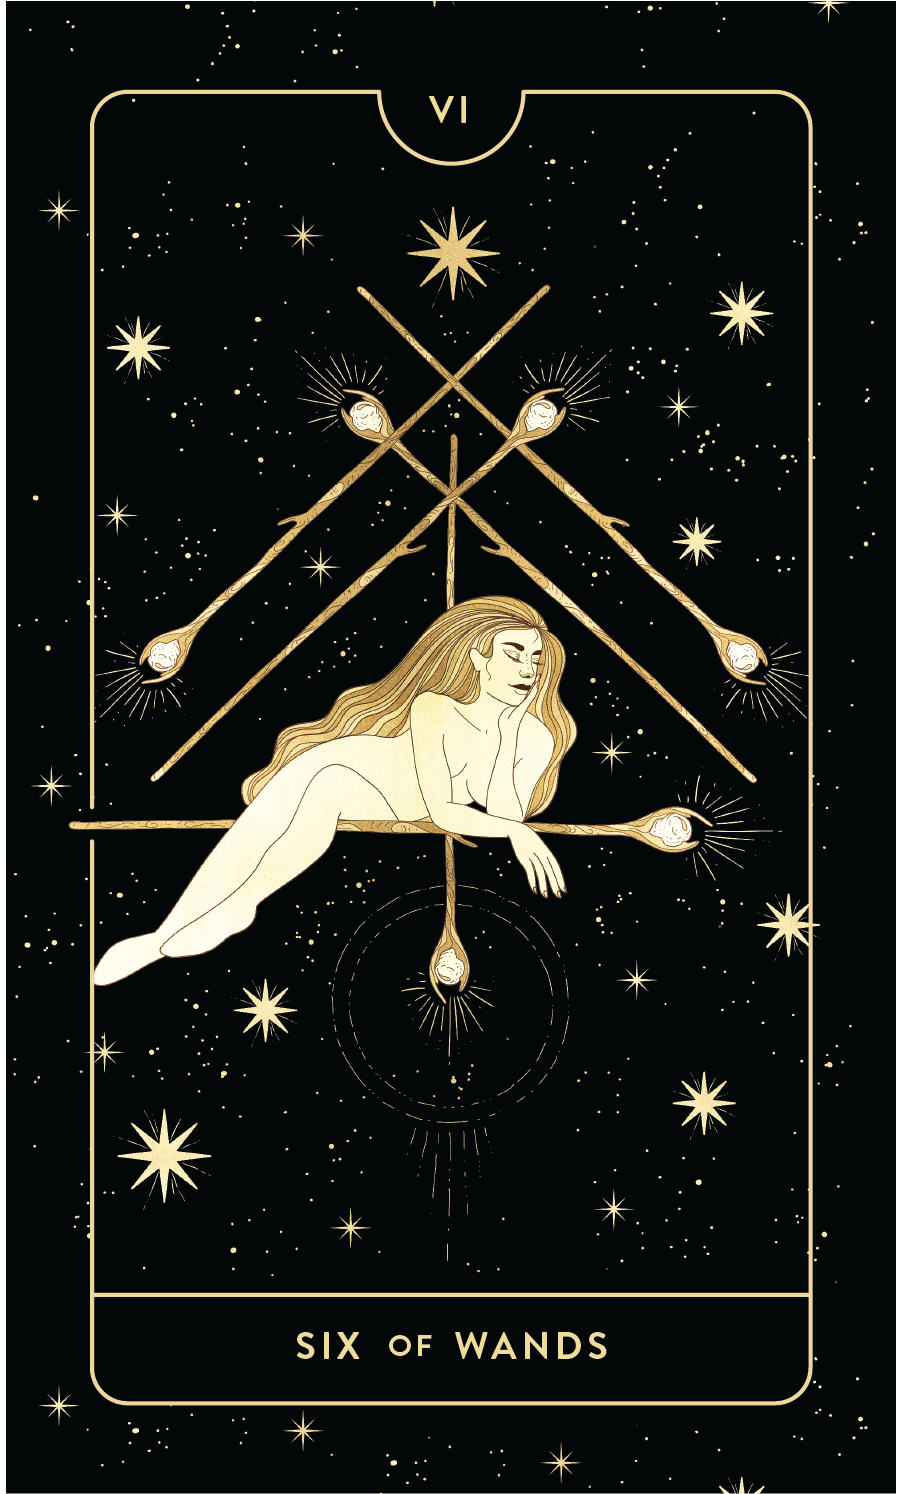 Divine Feminine Tarot Deck Six of Wands by Cocorrina